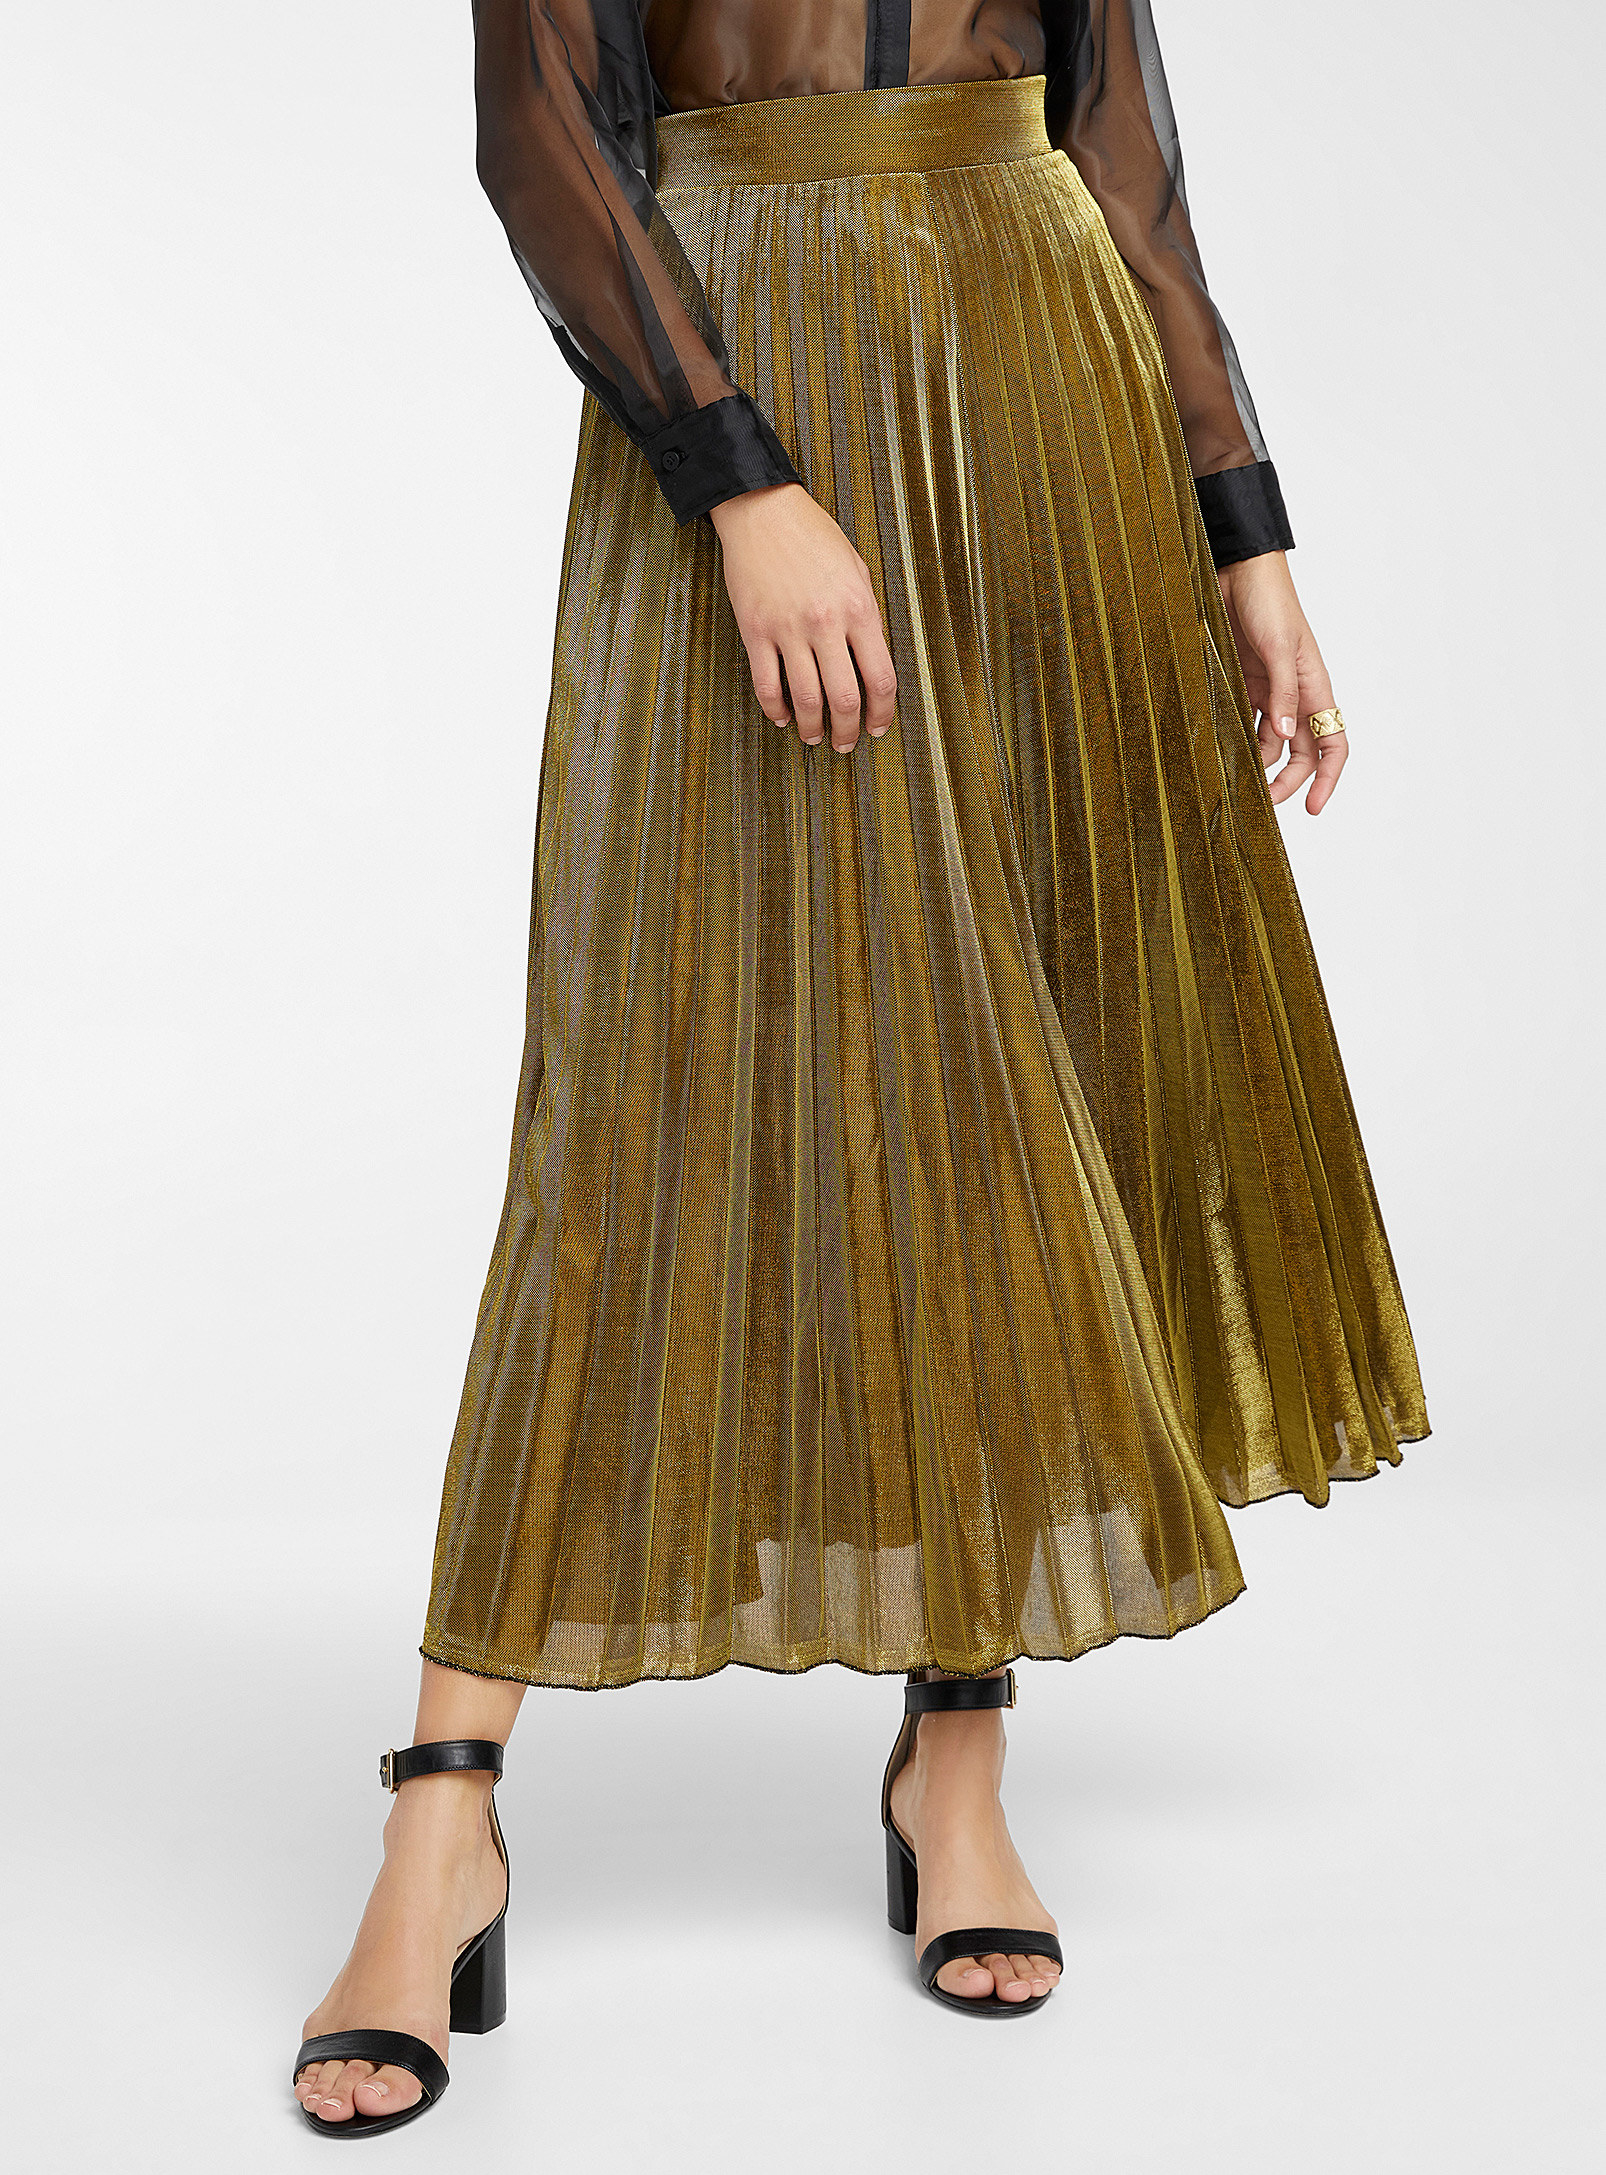 A person wearing along pleated skirt